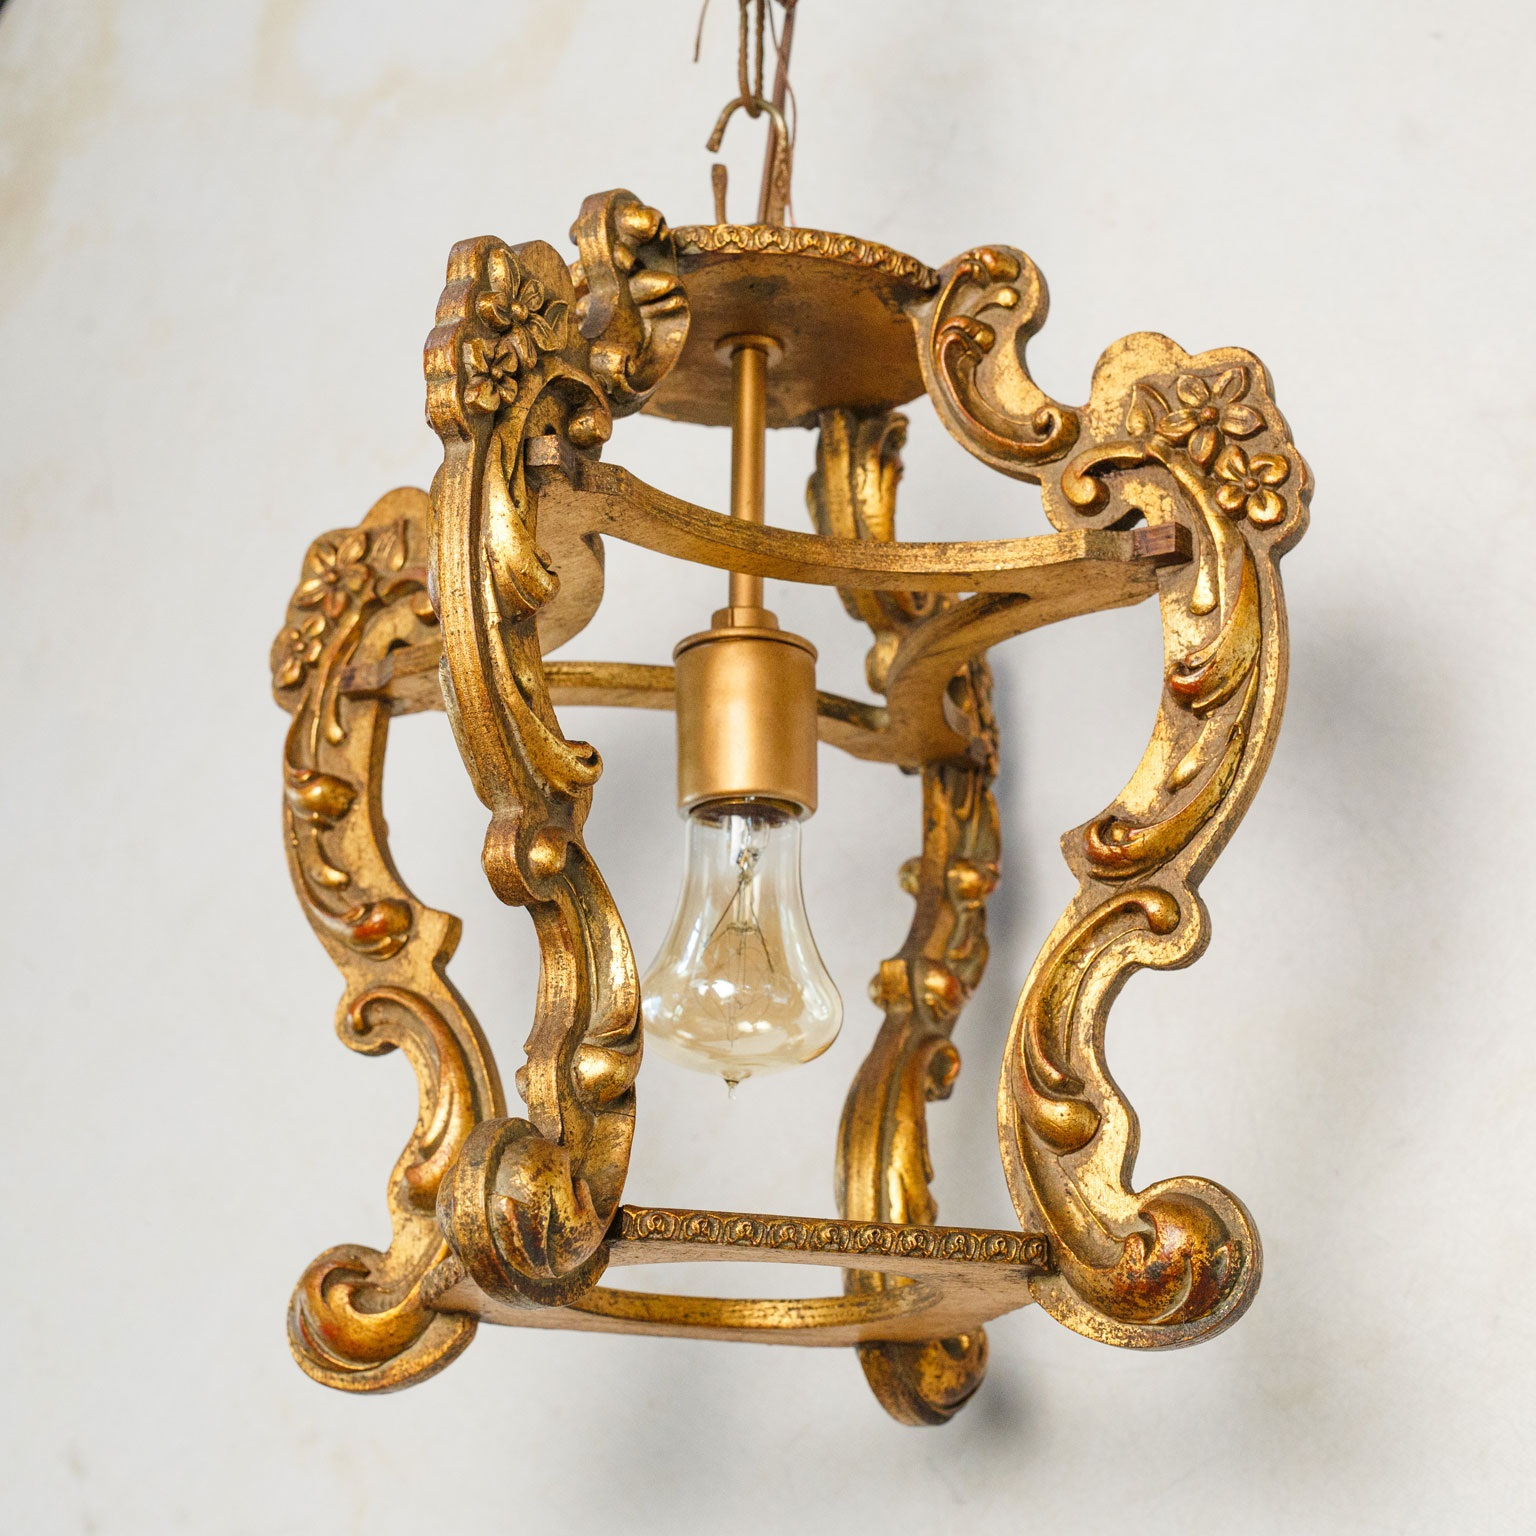 Hand-carved Giltwood Italian Lantern